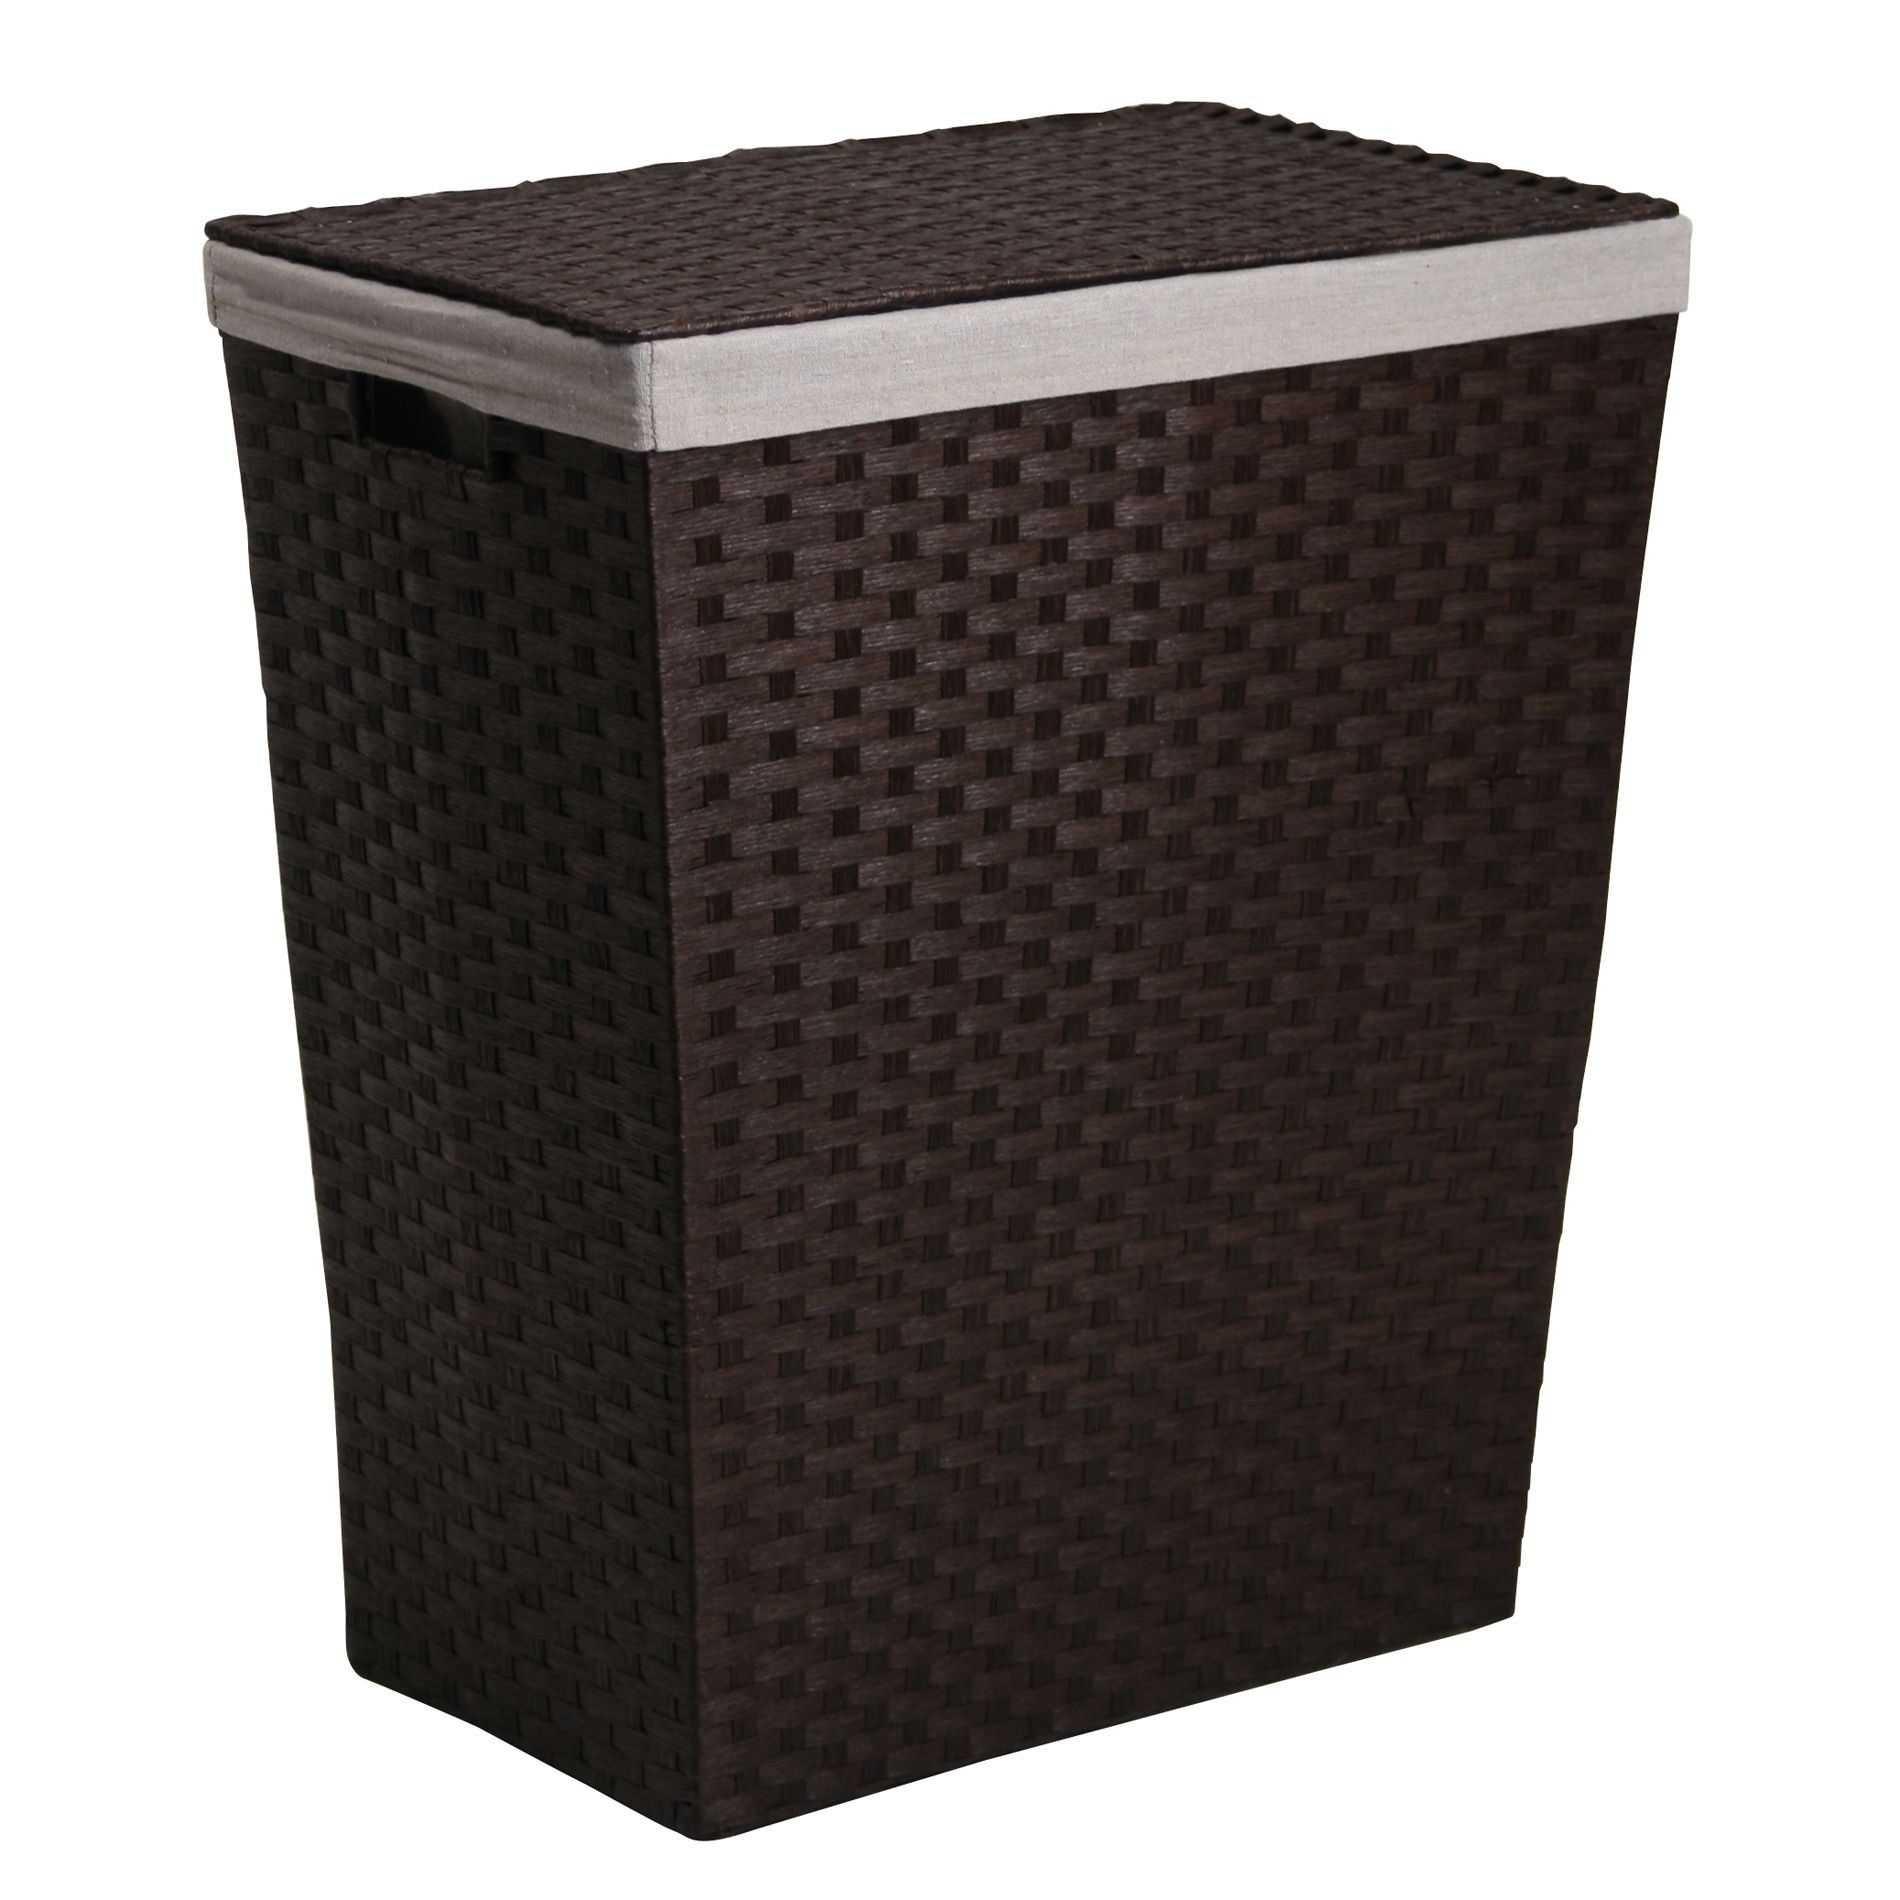 Elegant Laundry Hamper Hampers Clothes Hampers Laundry Hampers